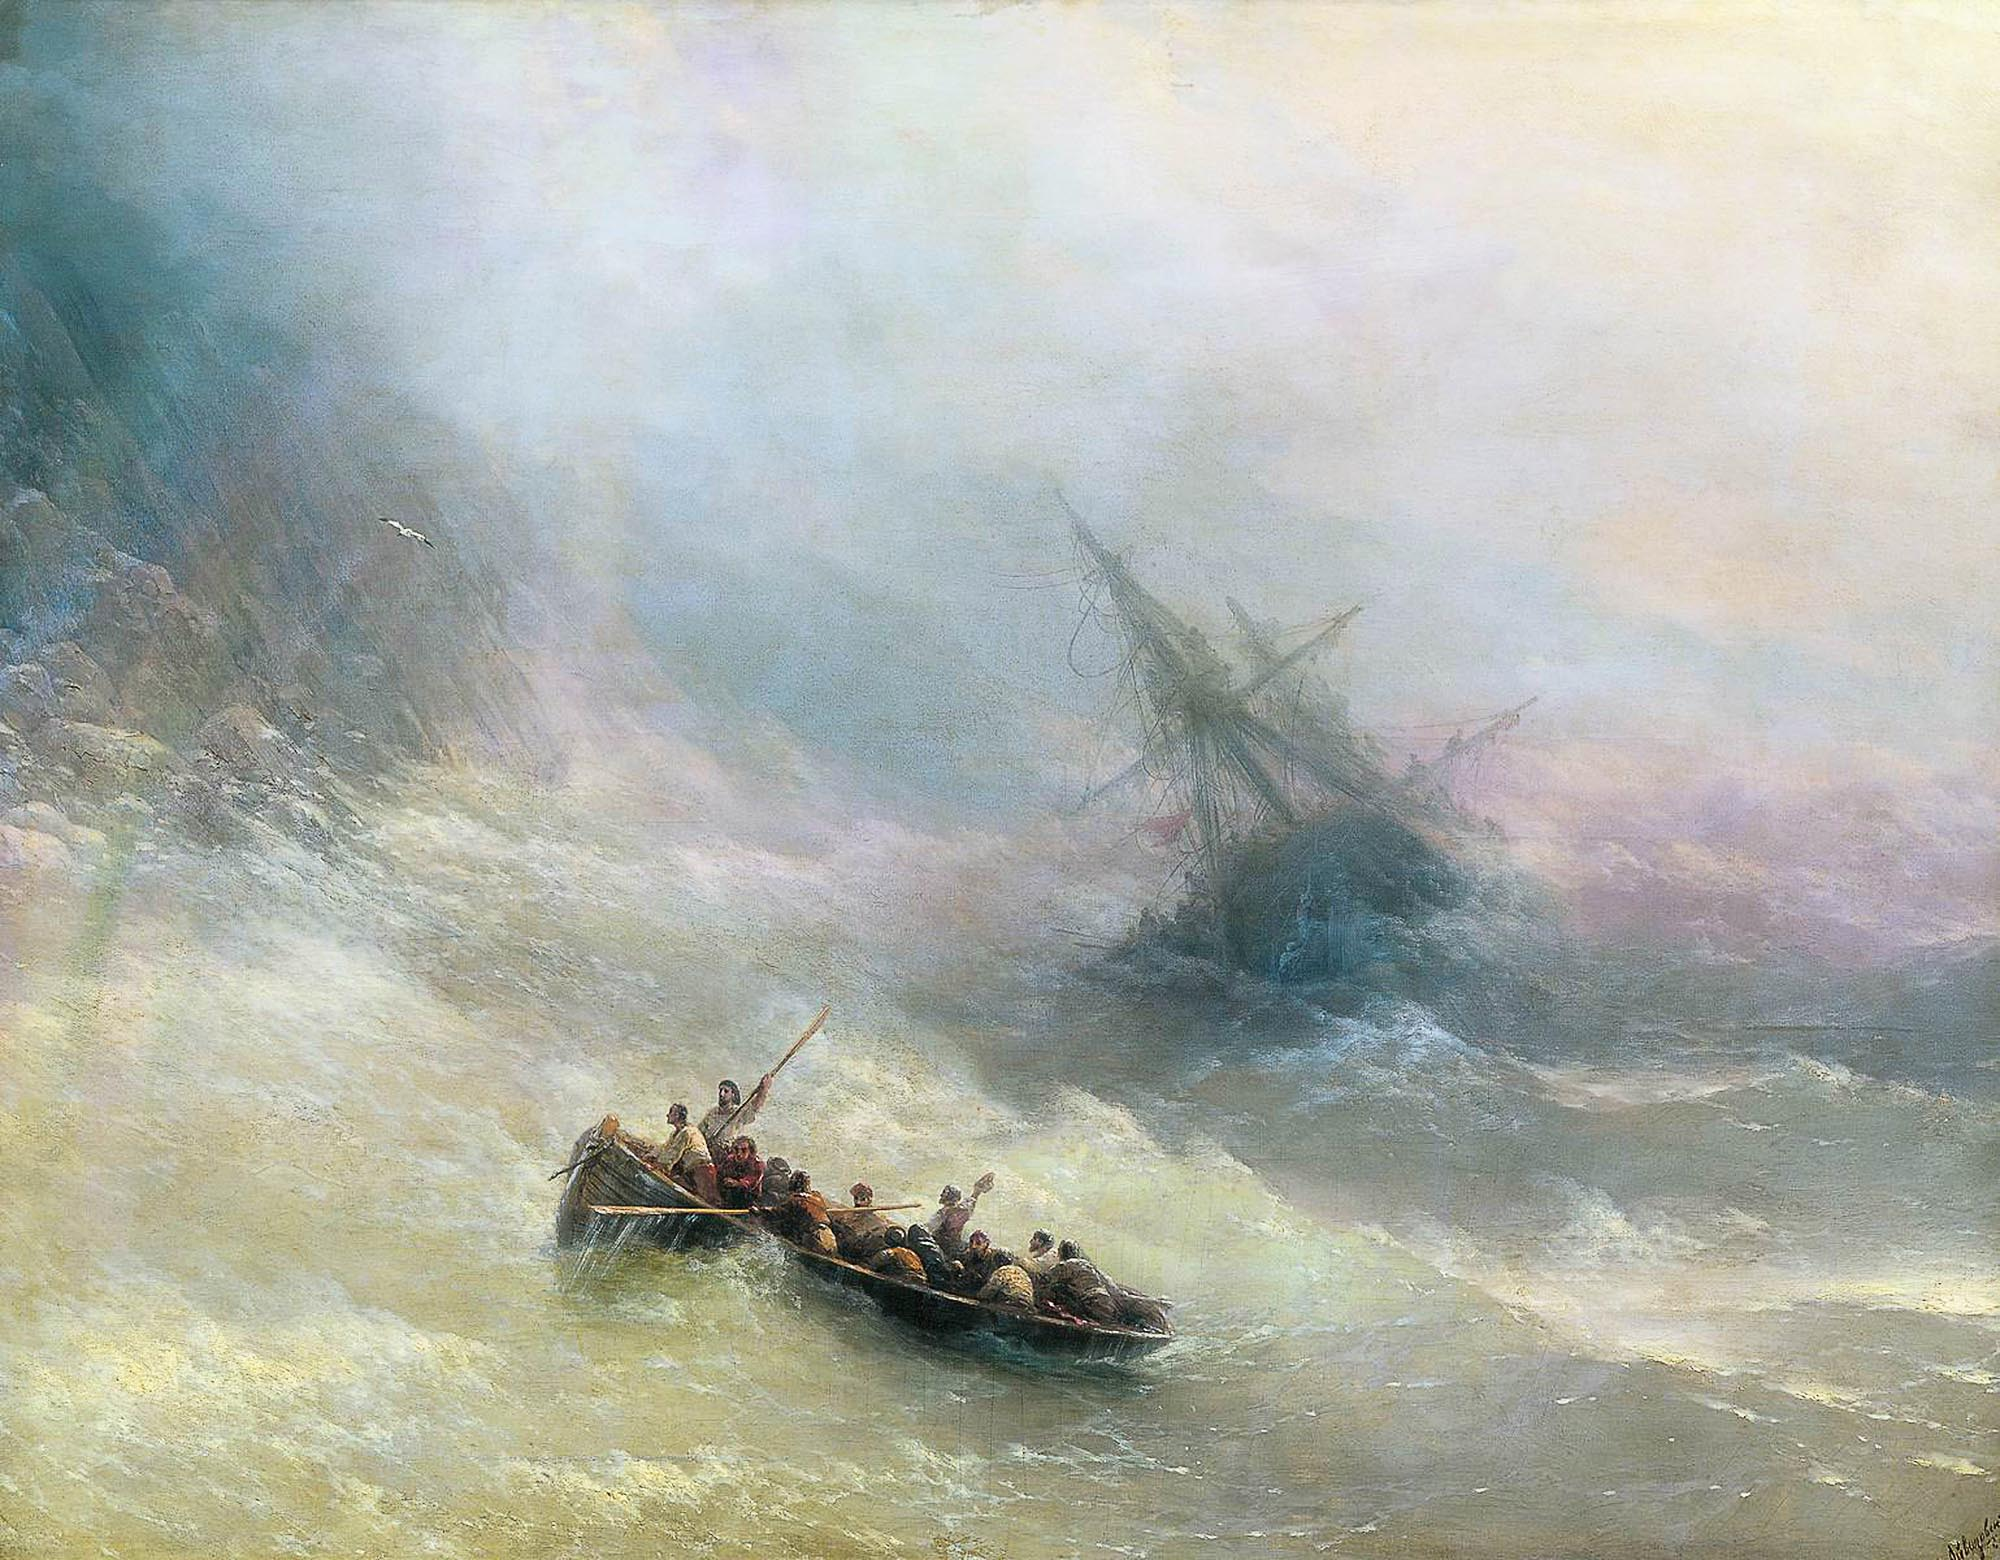 Russian artist Ivan Aivazovsky Rainbow, oil on canvas (1873)